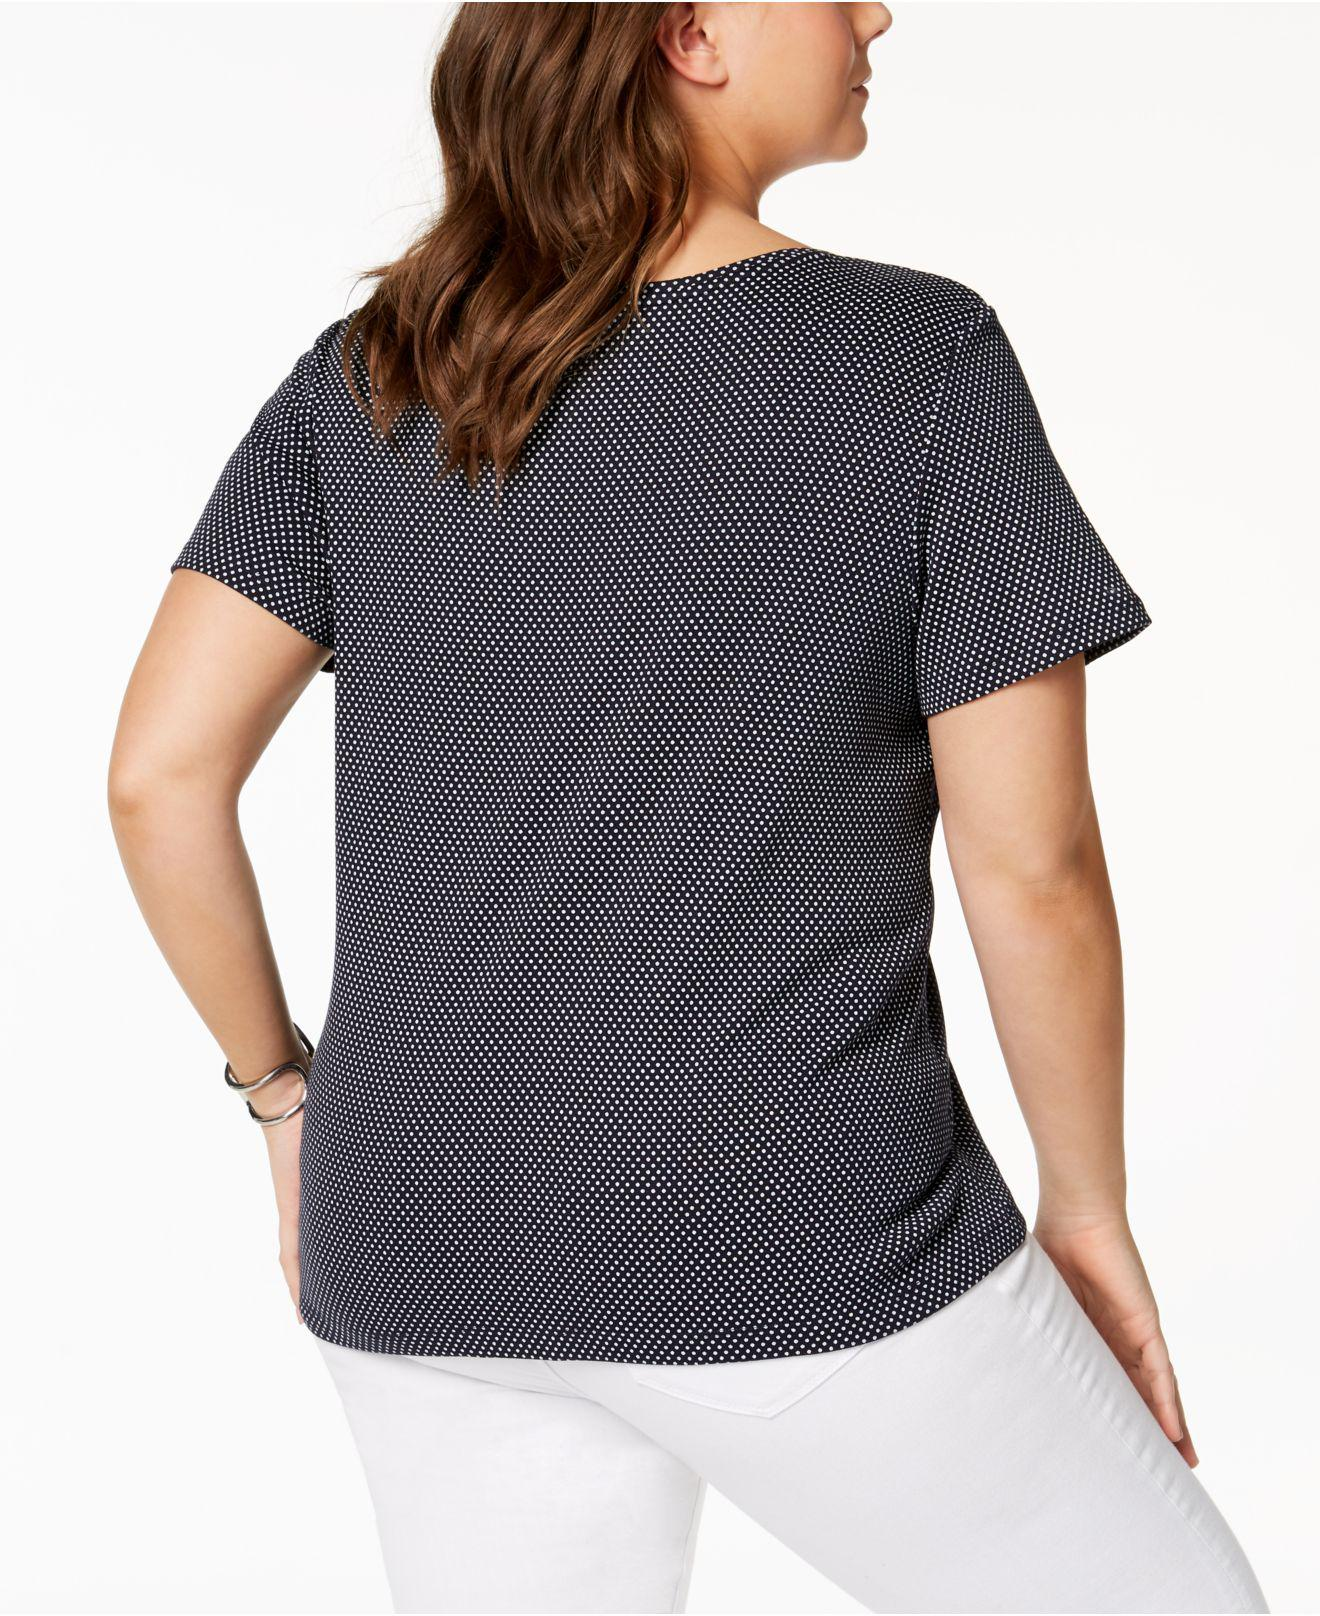 6bce49d33 Lyst - Tommy Hilfiger Plus Size Polka Dot Cotton V-neck T-shirt, Created  For Macy's